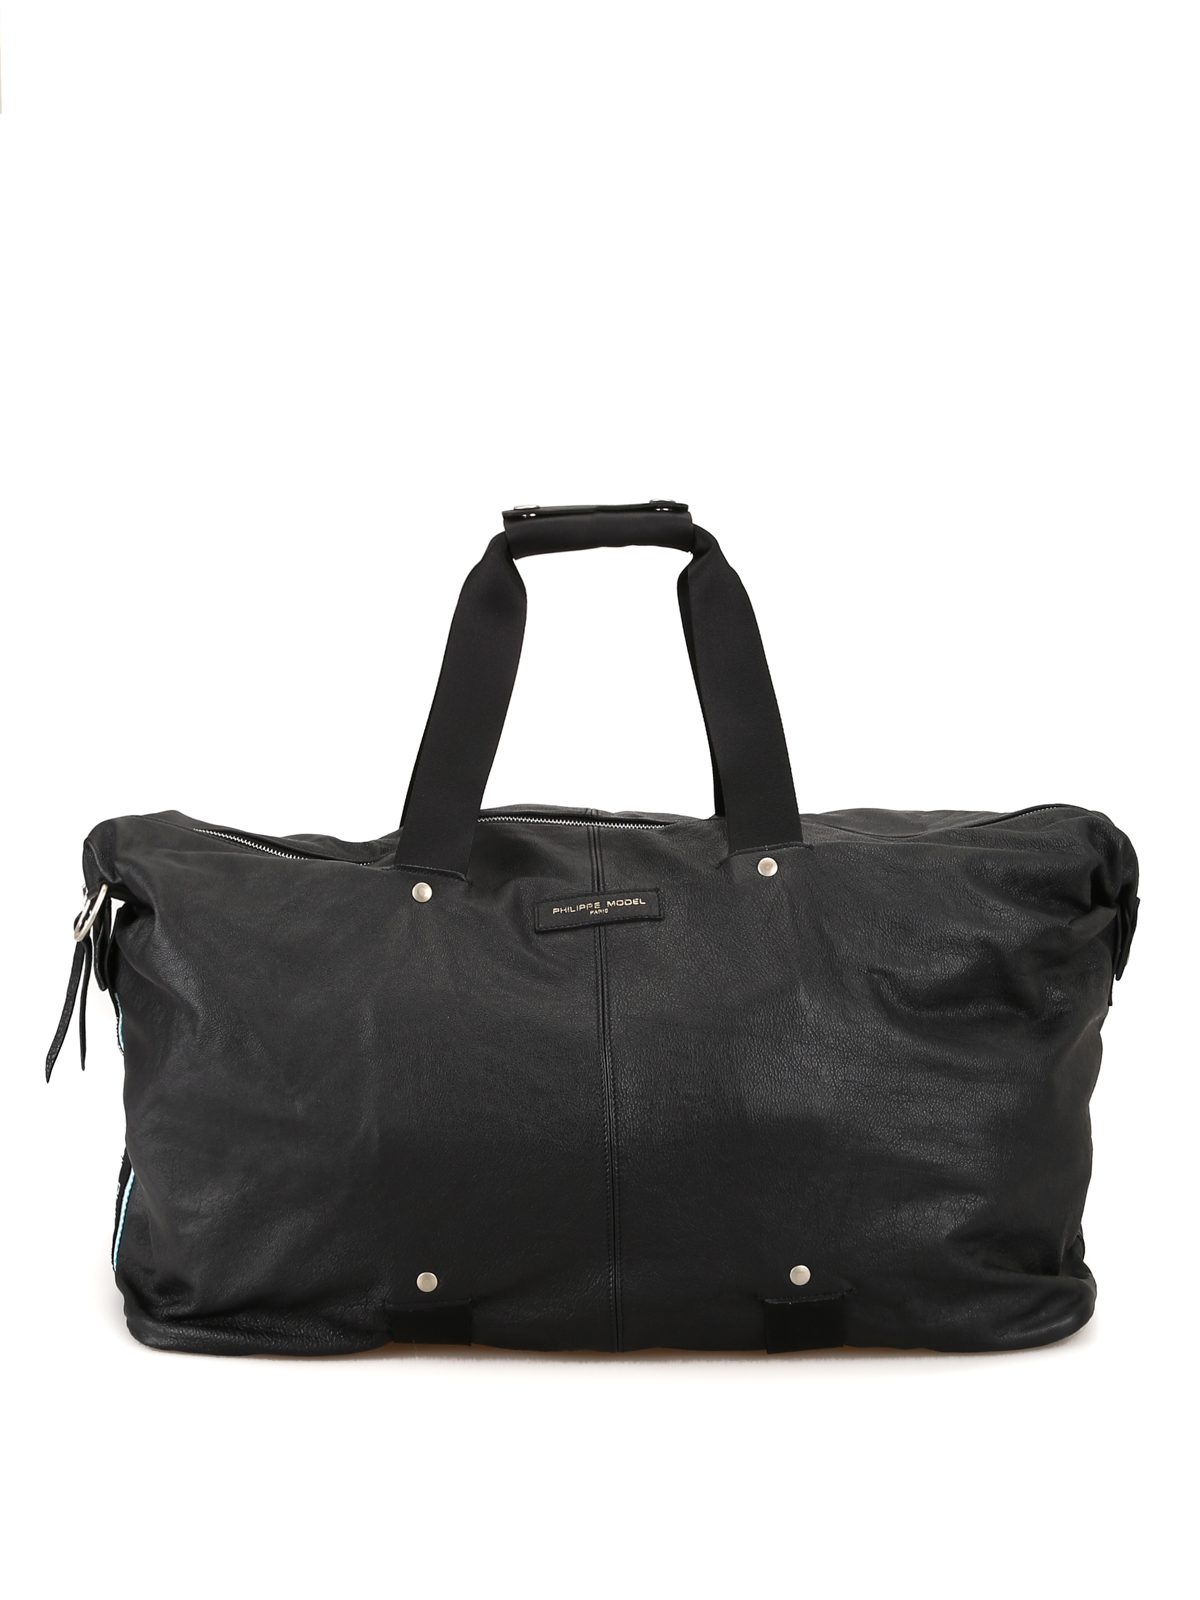 Philippe Model Charlotte Leather Gym Bag In Black